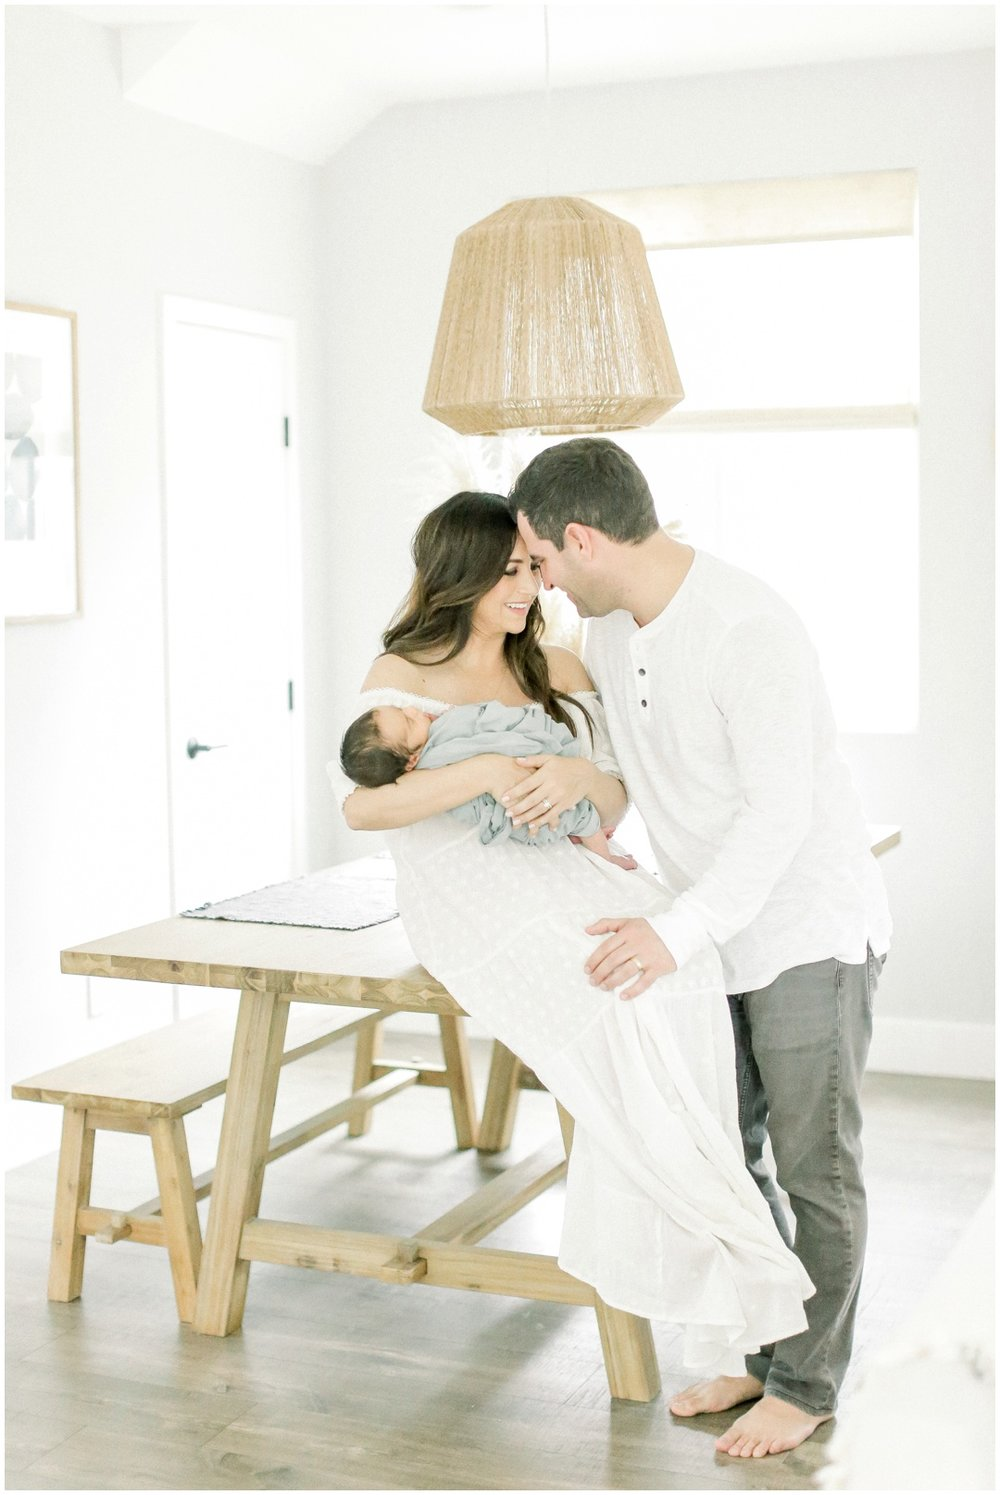 Newport_Beach_Newborn_Photographer_Newport_Beach_Maternity_Photographer_Orange_County_Family_Photographer_Cori_Kleckner_Photography_Huntington_Beach_Photographer_Family_OC_Newborn_Danielle_Char_Baum_Family_3094.jpg